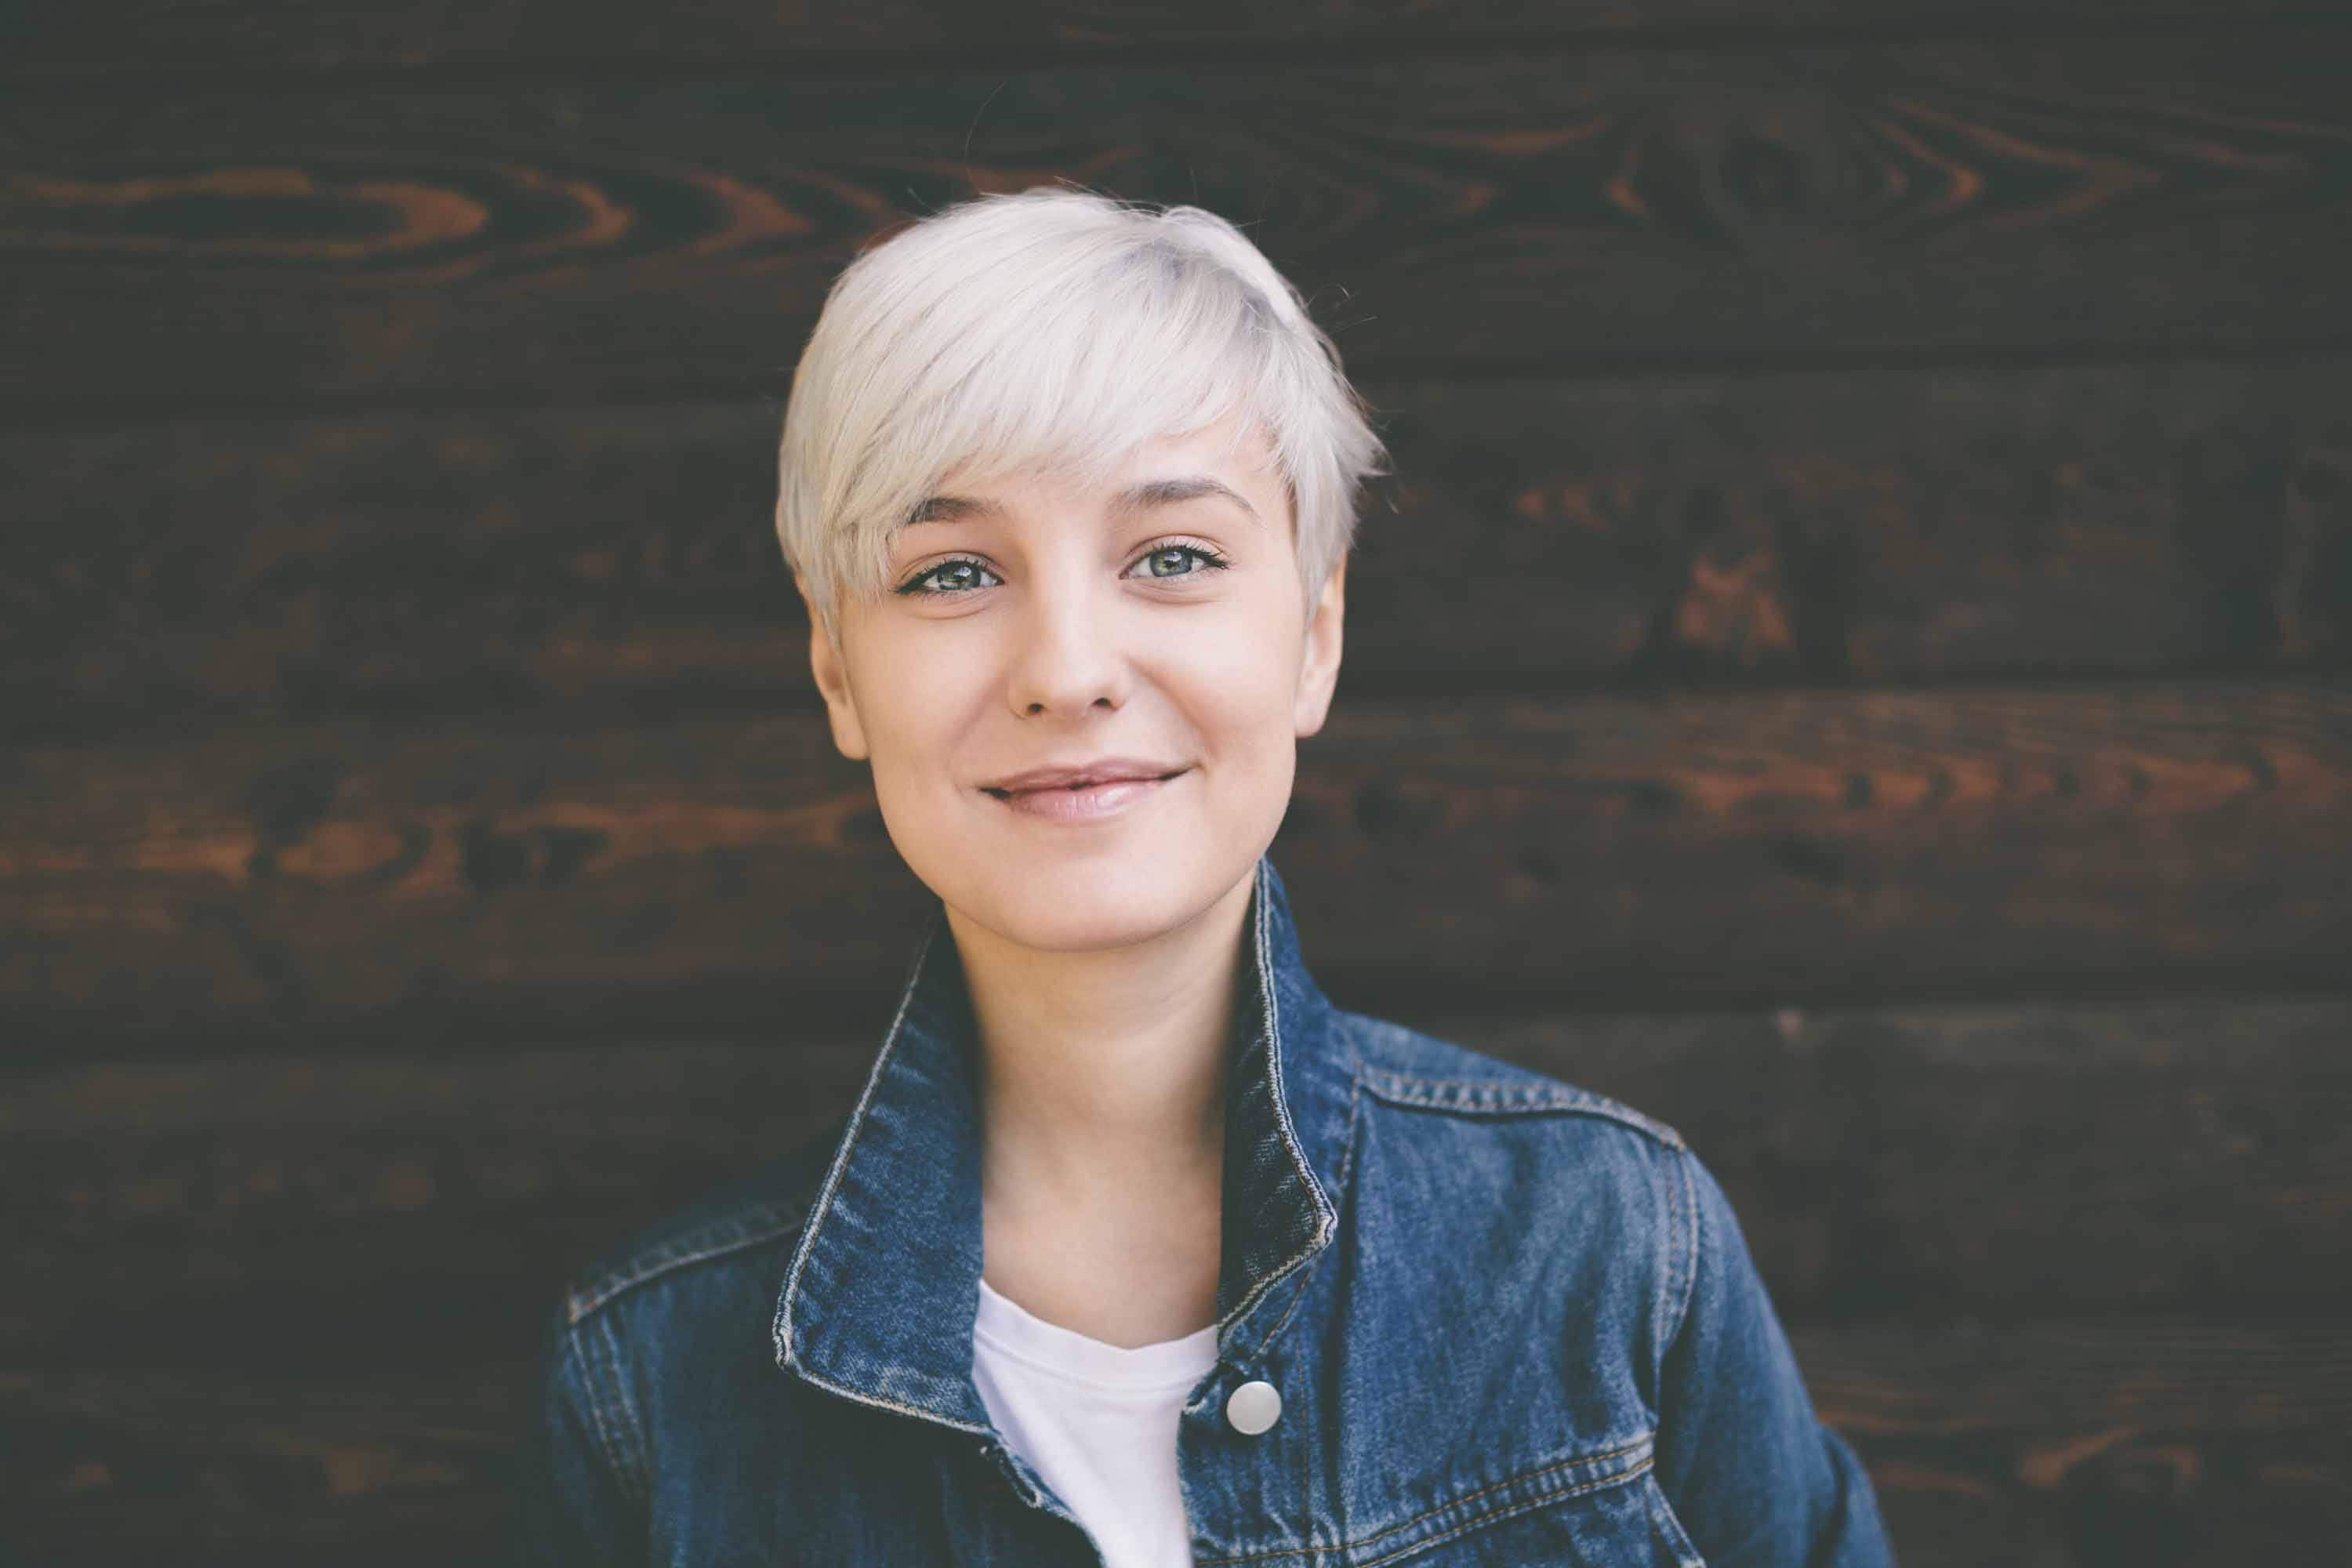 Hairstyles for round faces: blonde woman smiling with pixie haircut